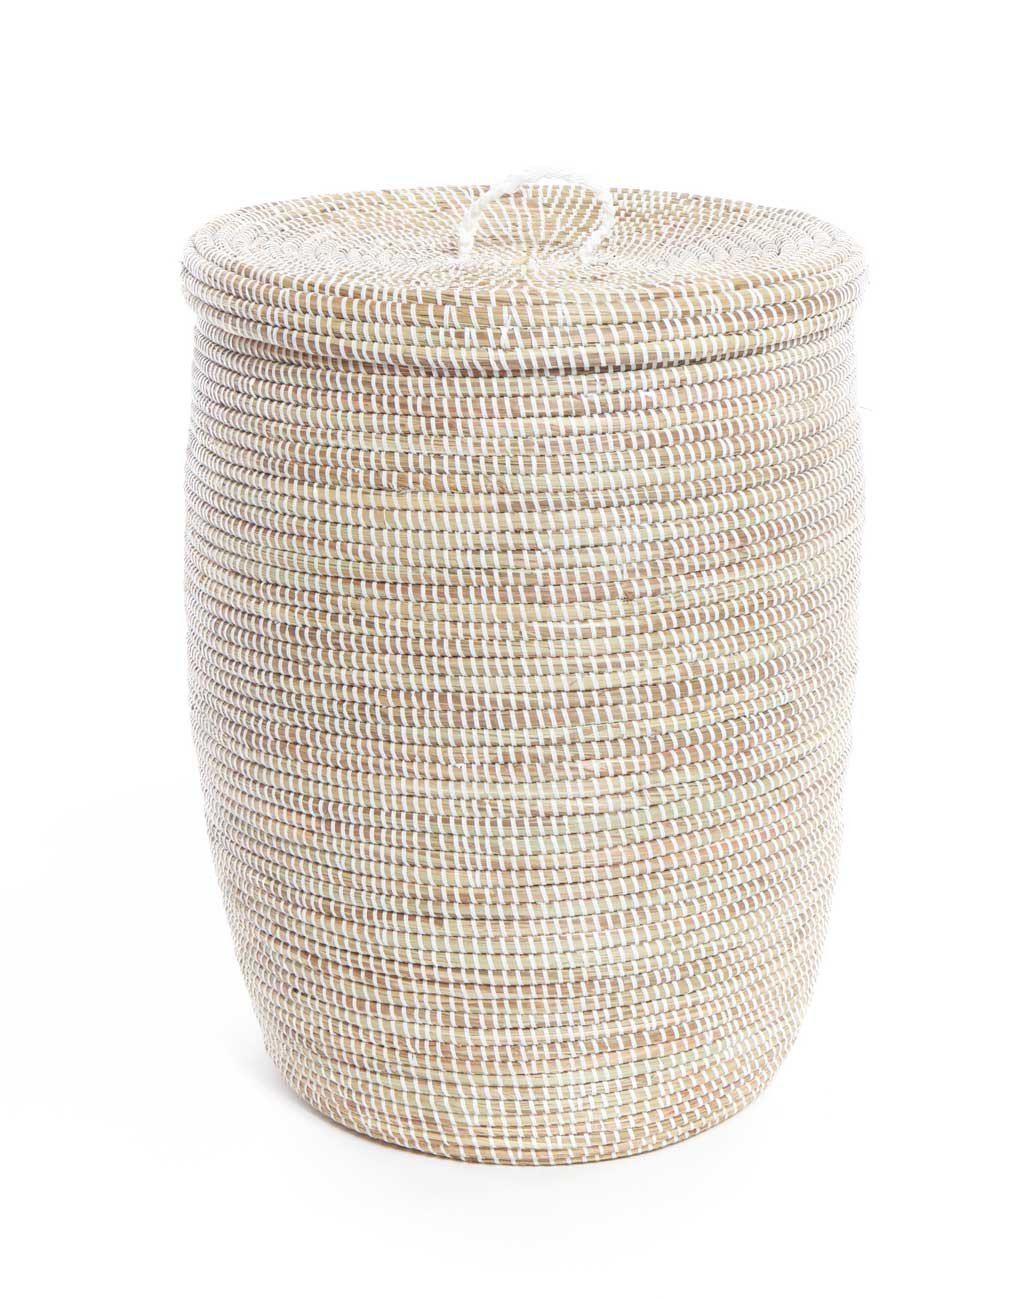 Handwoven Grass Recycled Plastic Tall Hamper Fair Trade White